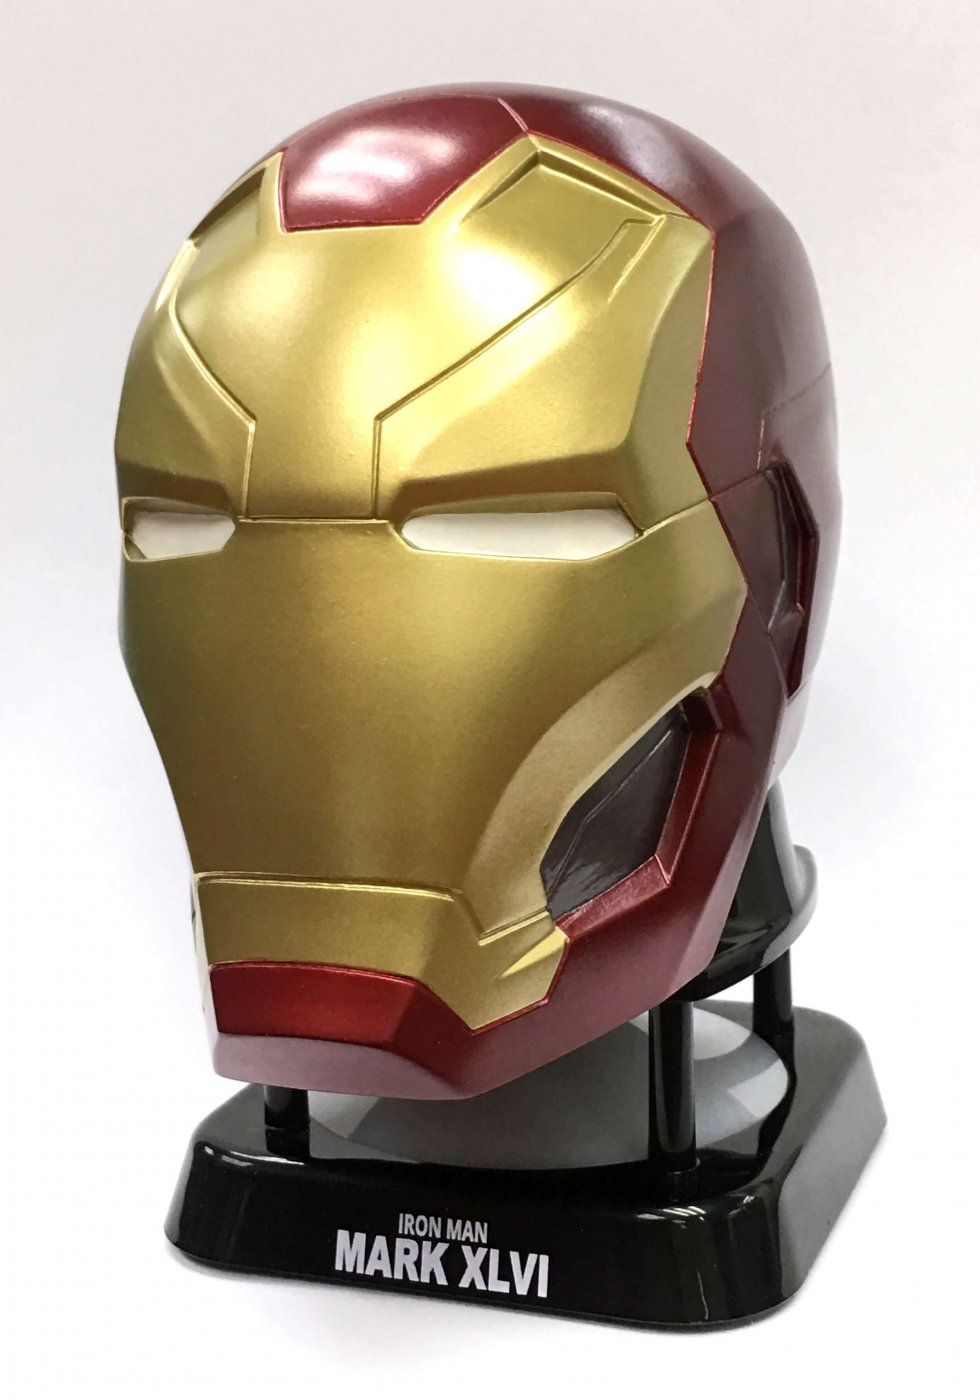 Iron man mini bluetooth mp3 speaker cool mania - Mini iron man ...